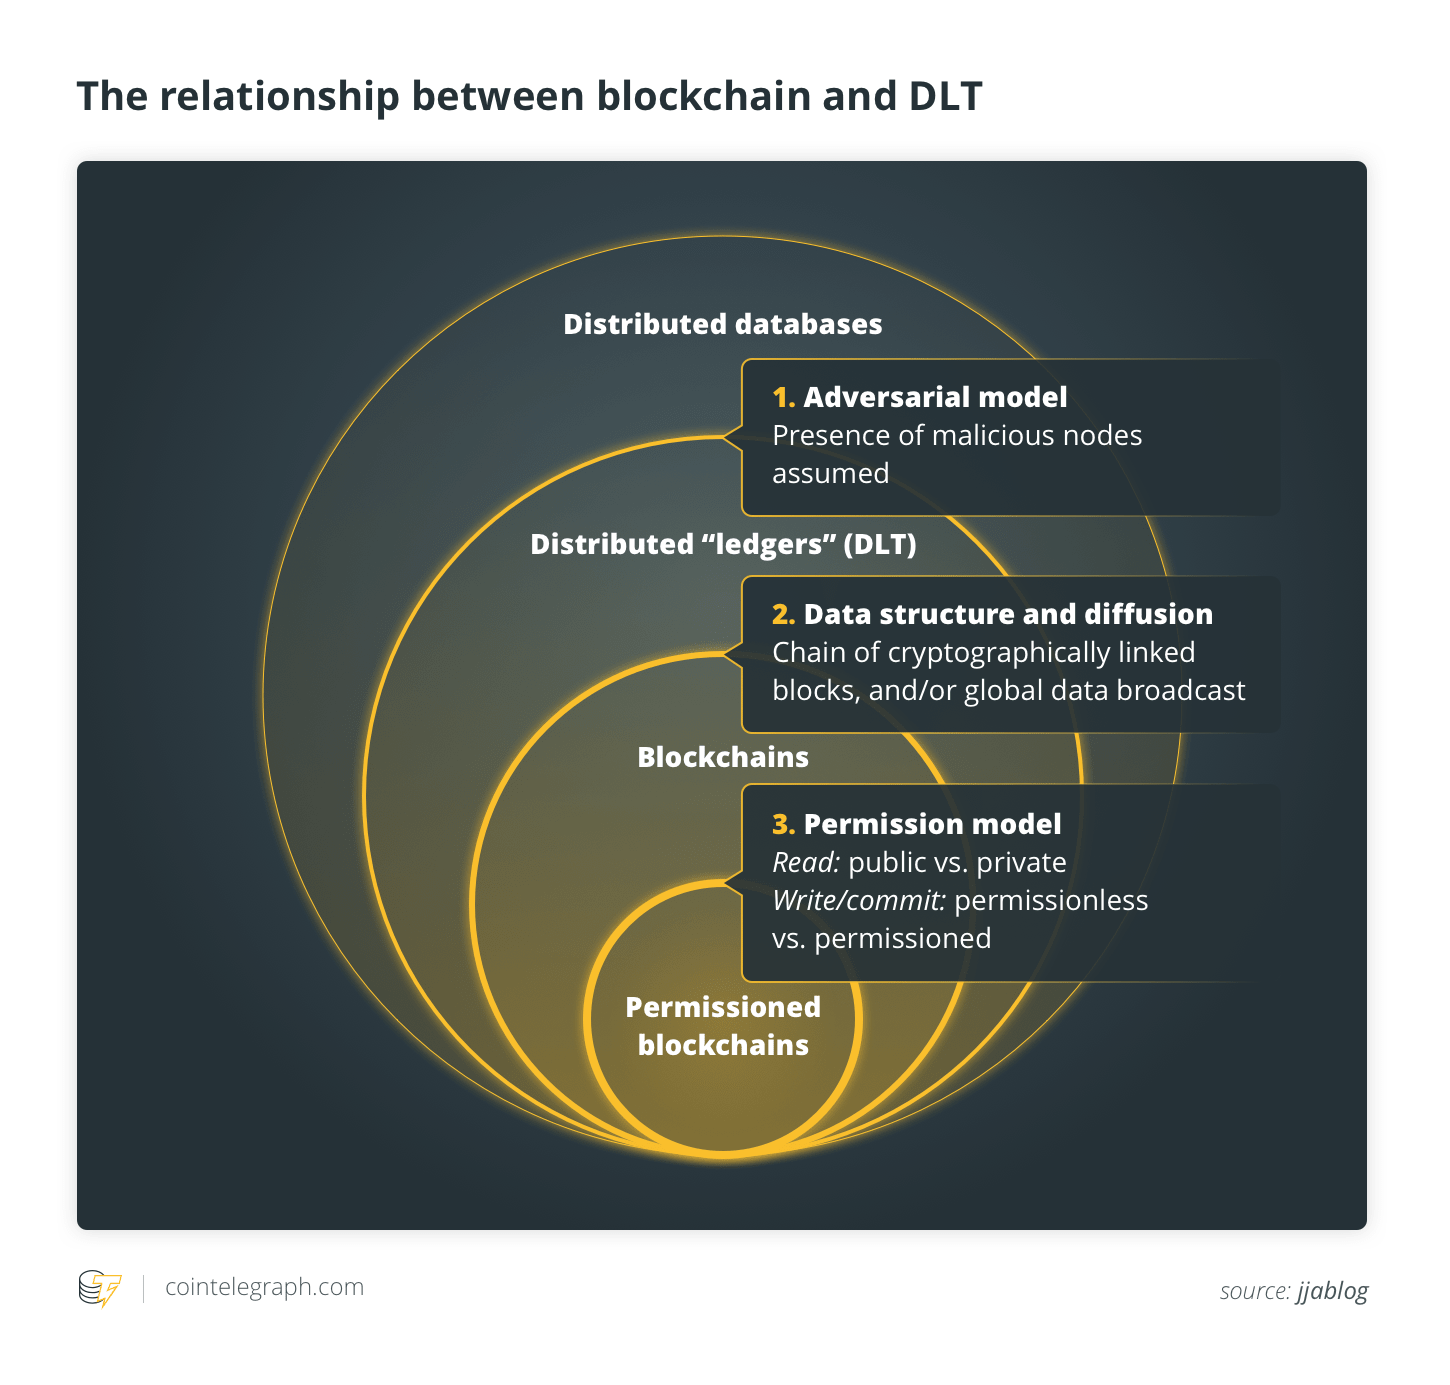 The relationship between blockchain and DLT